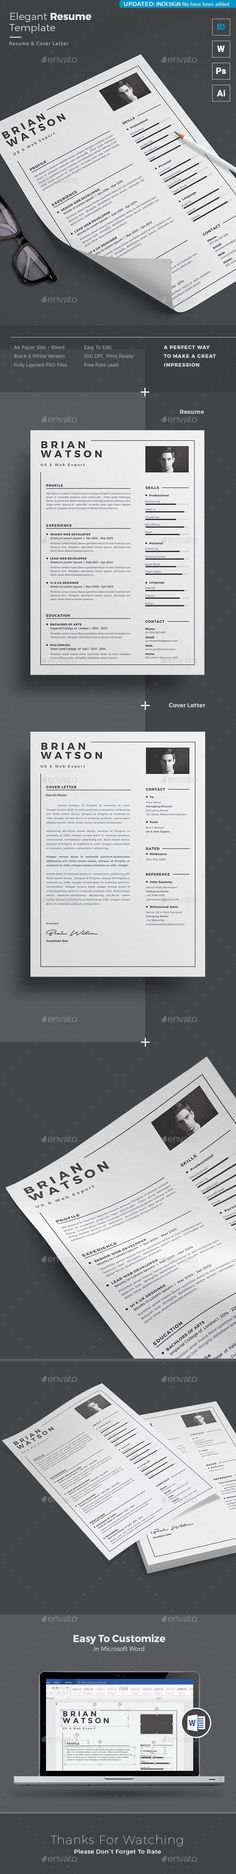 What To Write When Emailing A Resume Resume  Modern Resume Template Modern Resume And Cv Template Professional Summary For Resume Word with Restaurant Manager Duties For Resume Pdf Resume Er Tech Resume Pdf